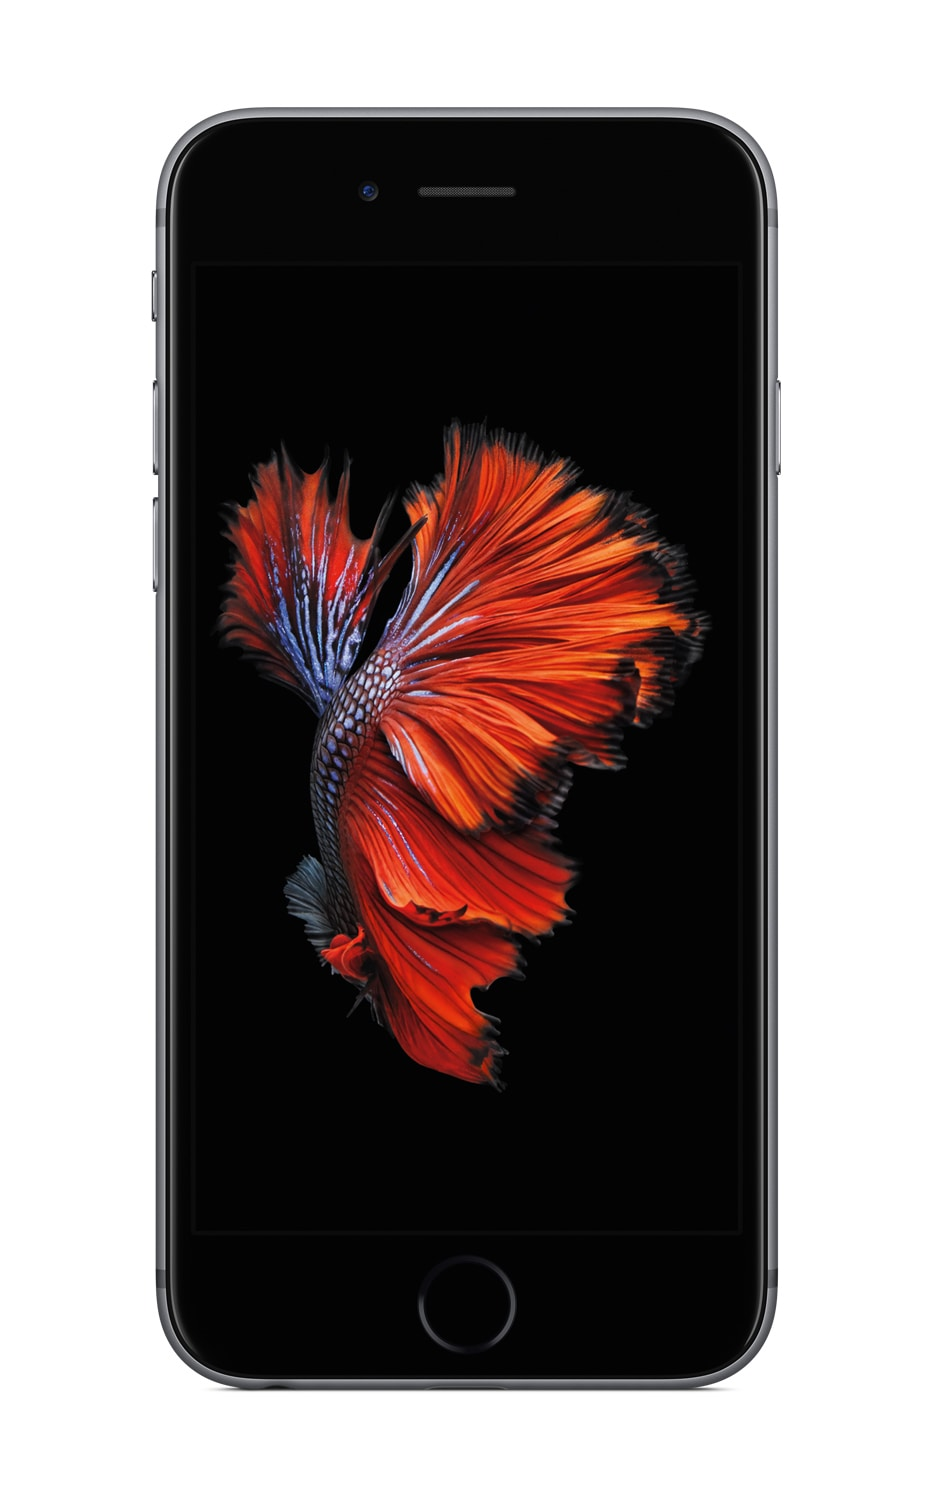 a8e11691154adc Apple iPhone 6s   Cell Phones at T-Mobile